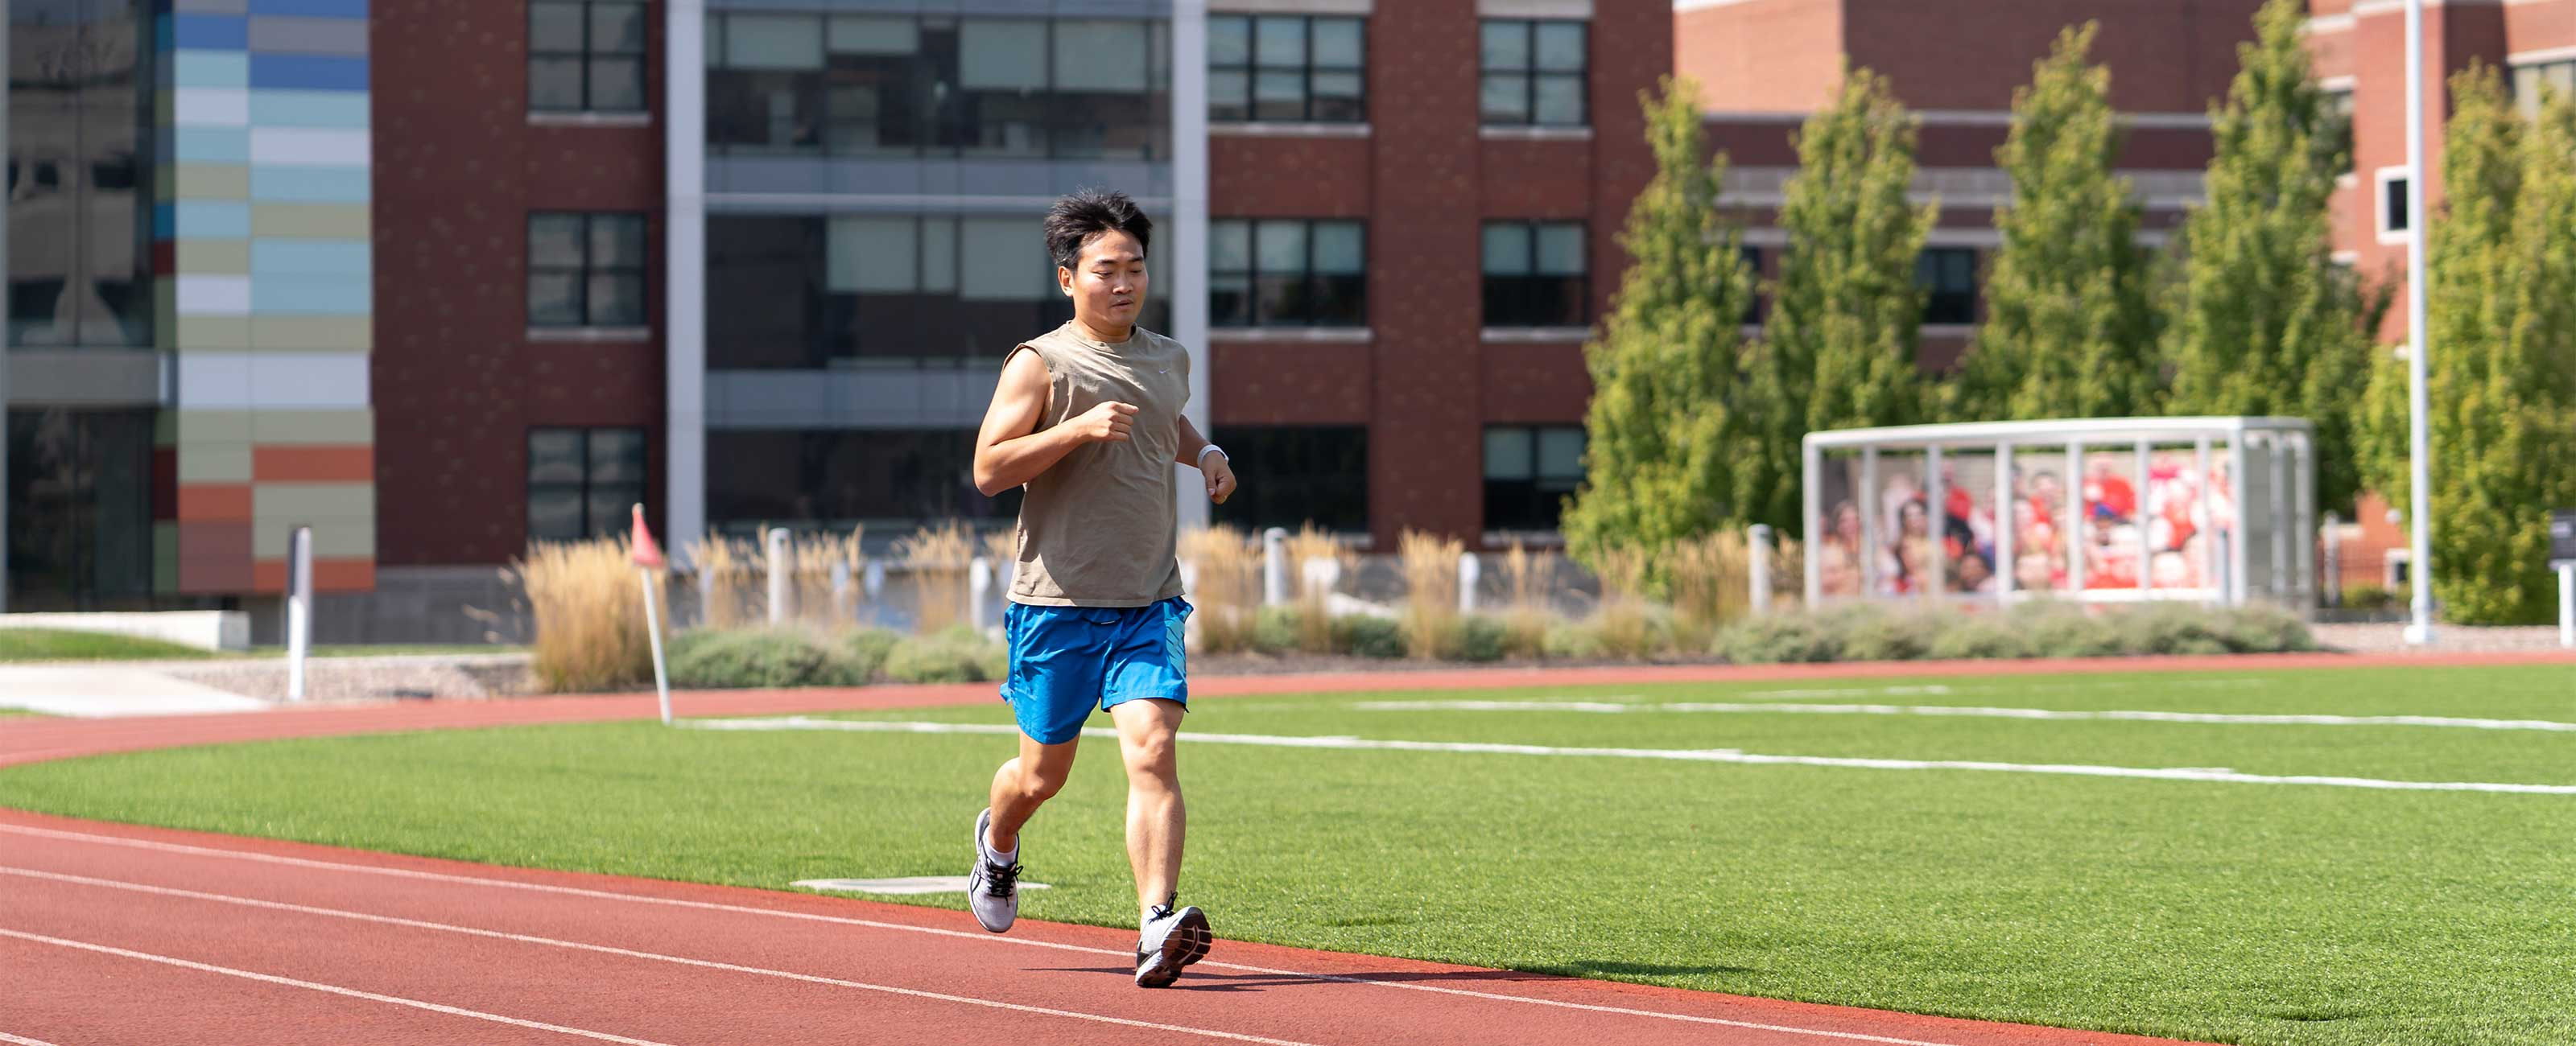 2x-embed-story-yuan-shi-running-on-track-Photo-3